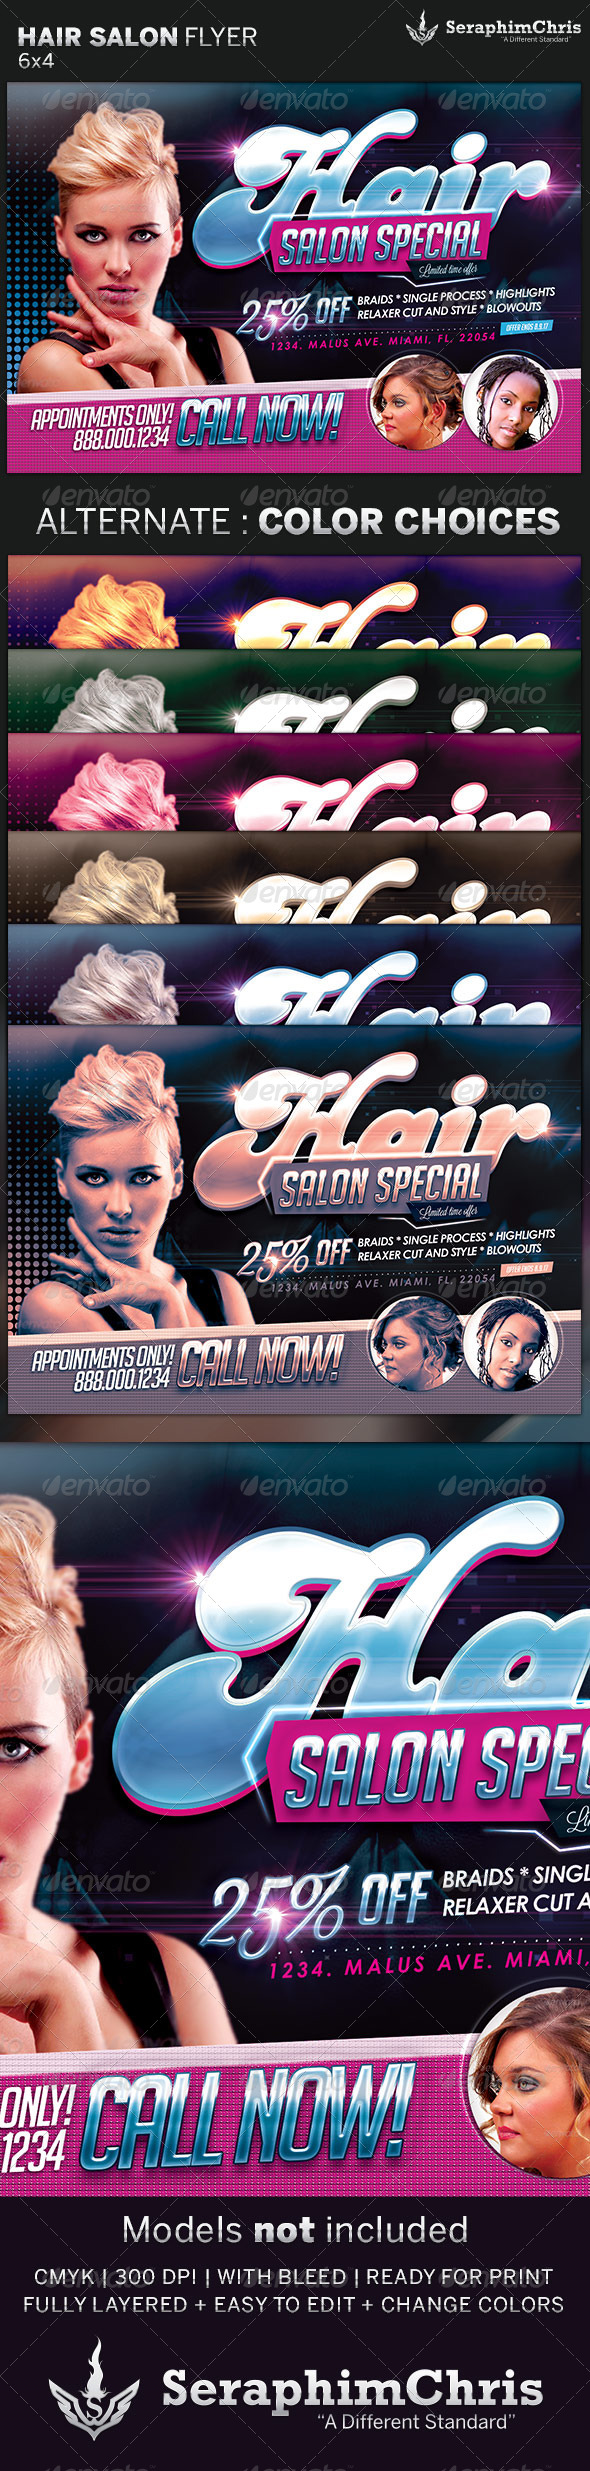 Hair And Beauty Salon Flyer Template   Commerce Flyers